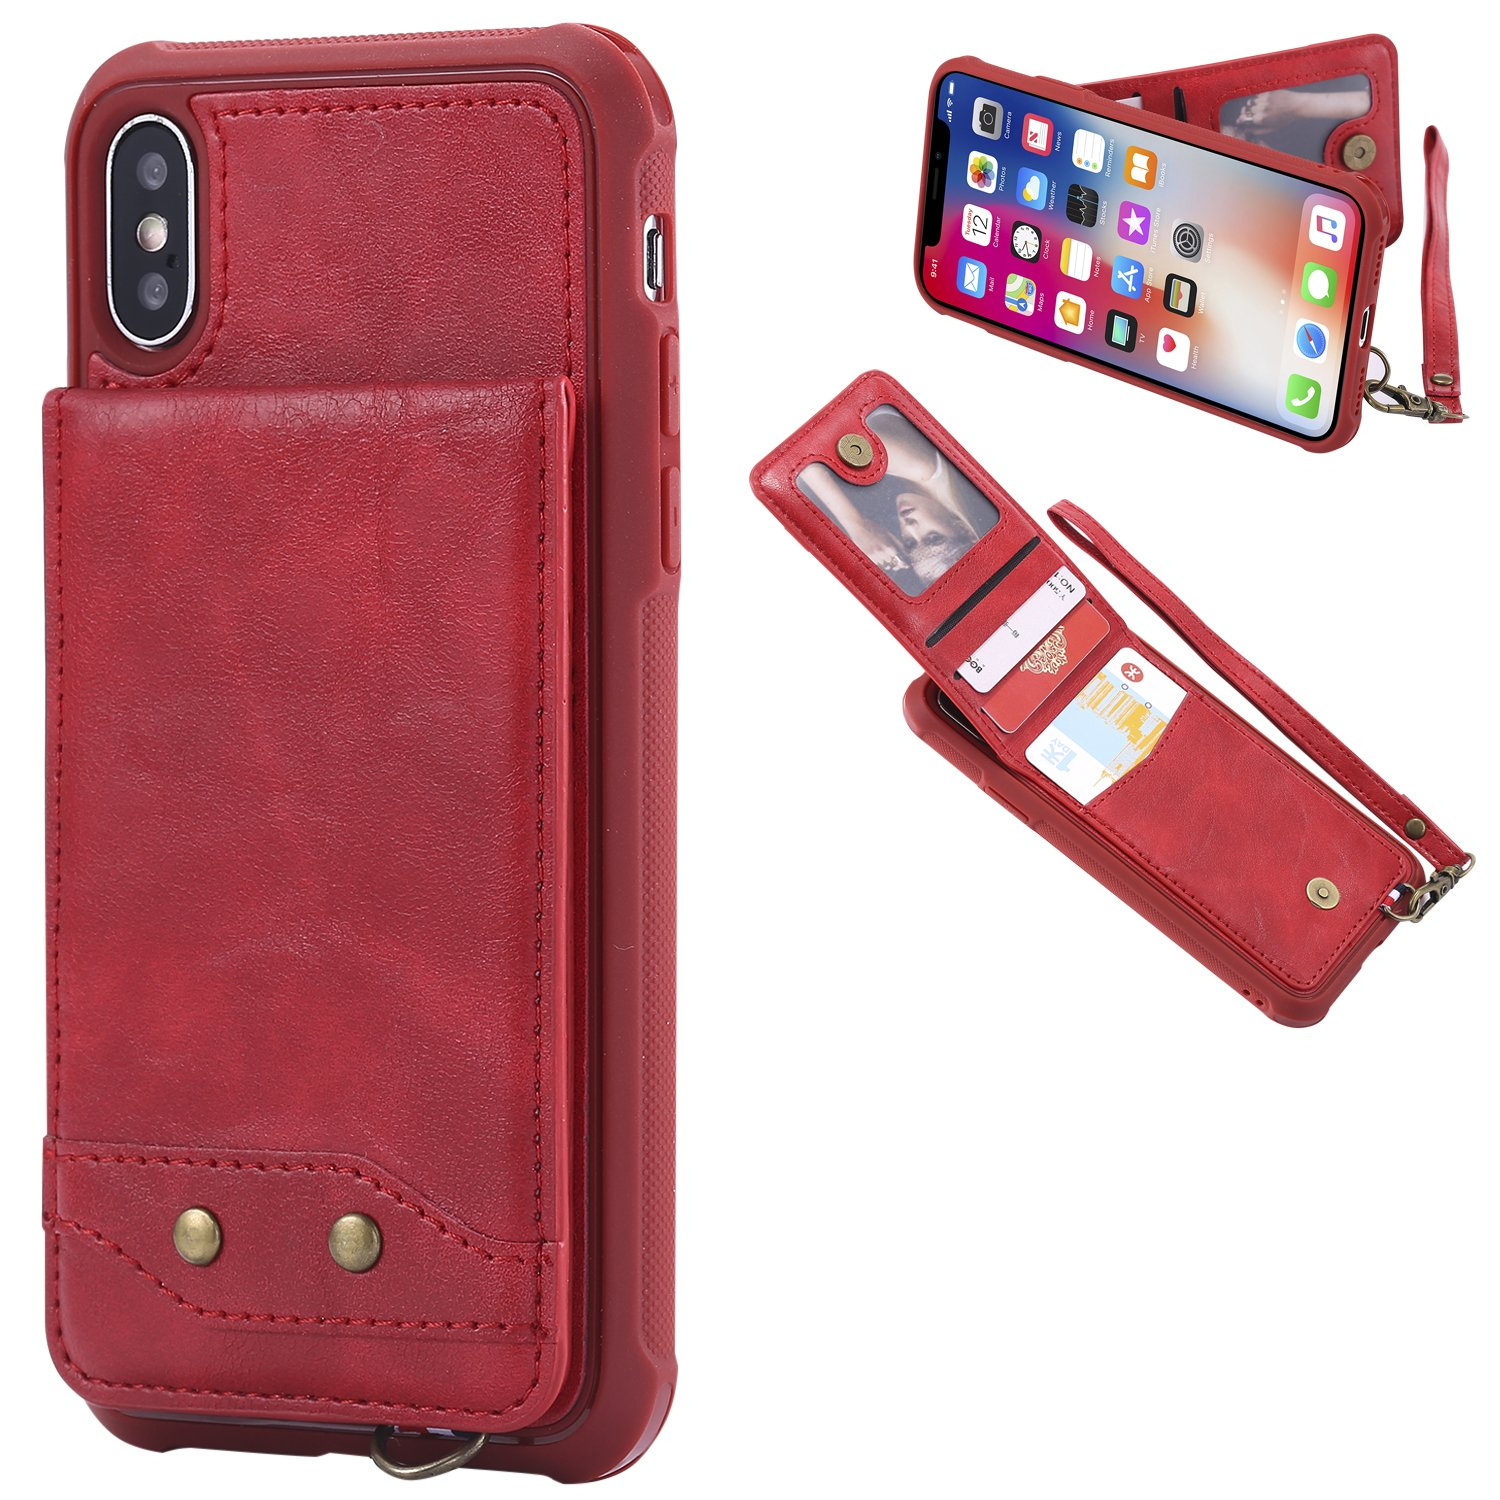 DAMONDY iPhone X Case, Luxury Wallet Purse Card Holders Design Cover Soft Shockproof Bumper Flip Leather Kickstand Magnetic Clasp With Wrist Strap Case for Apple iPhone X (2017)-red